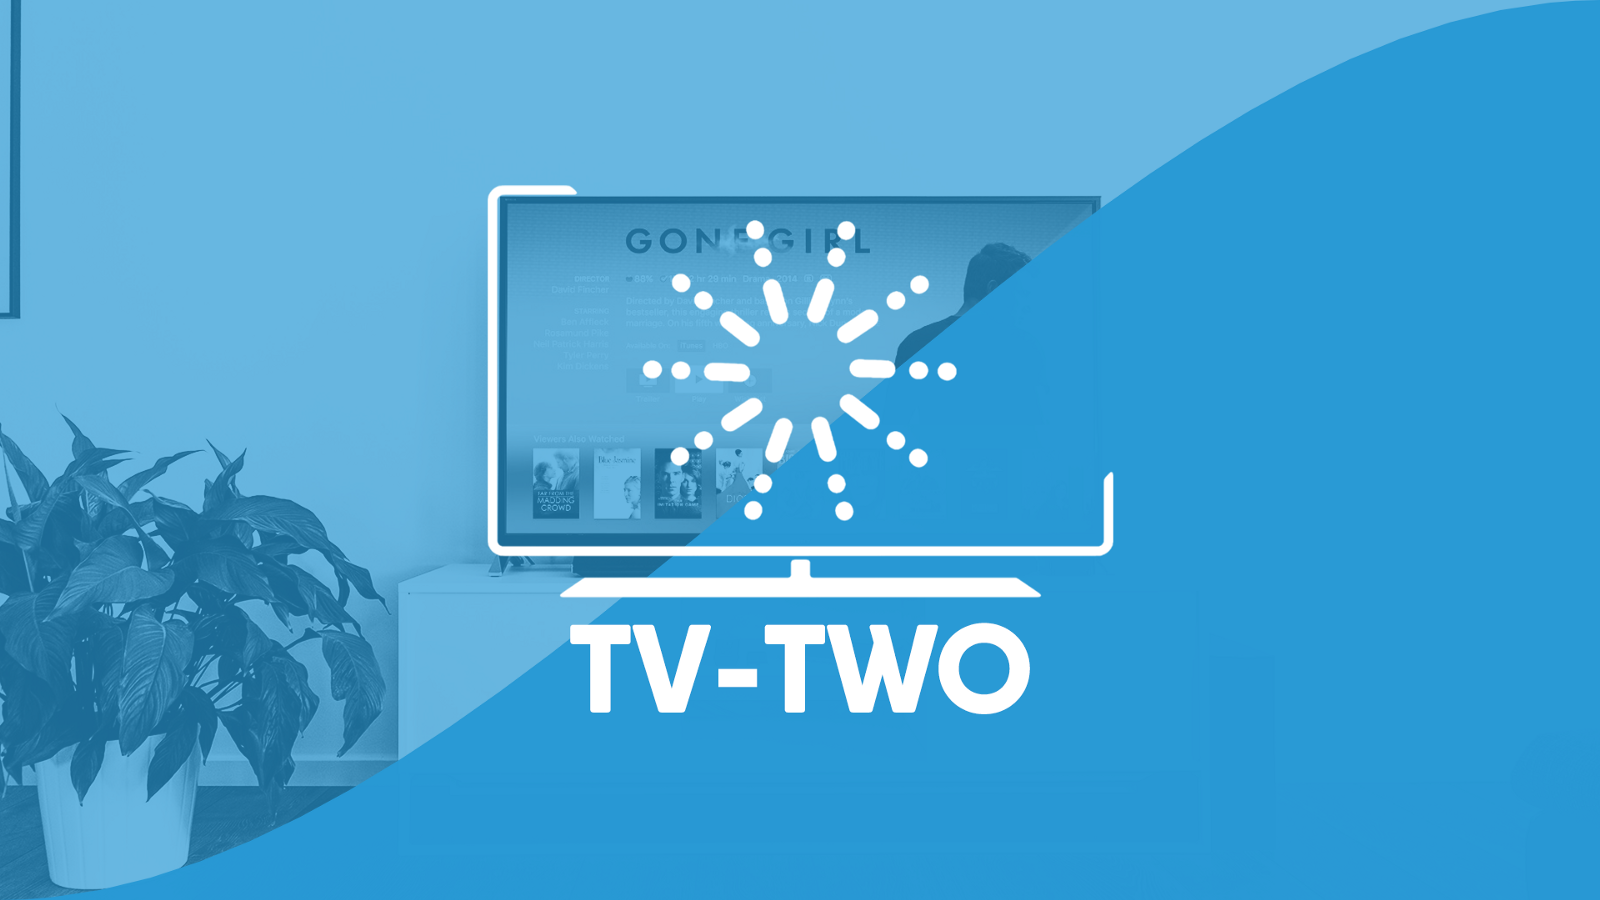 ICO Review: TV-TWO